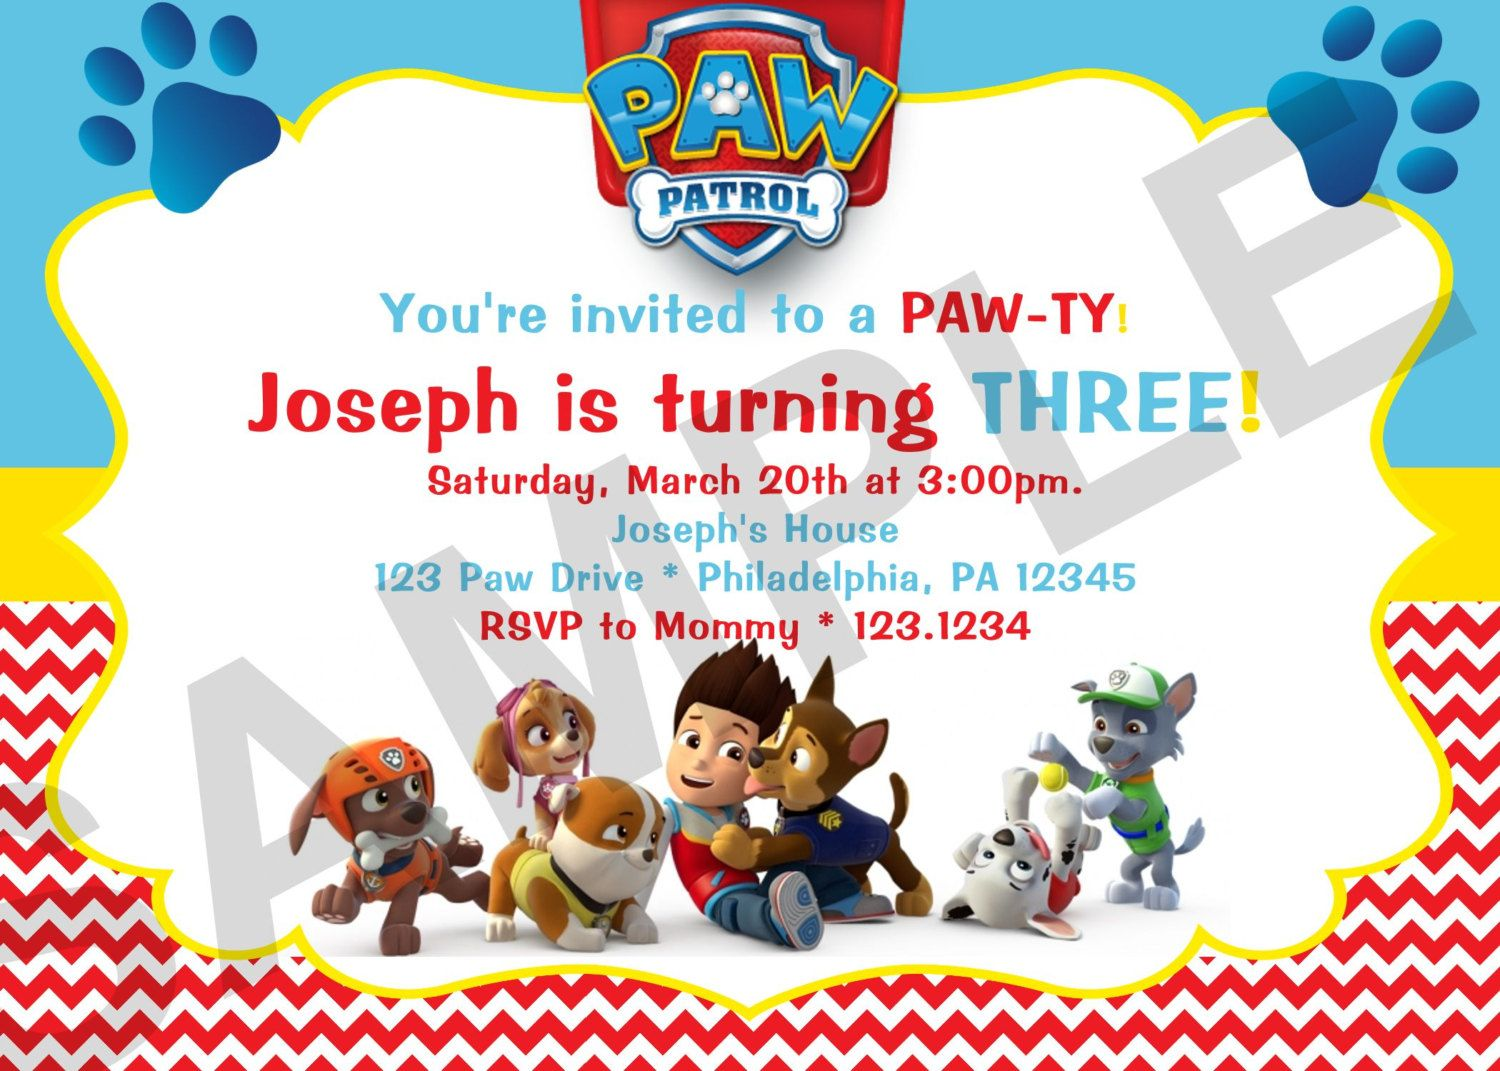 Download Paw Patrol Birthday Invitations For Free Just Right Click